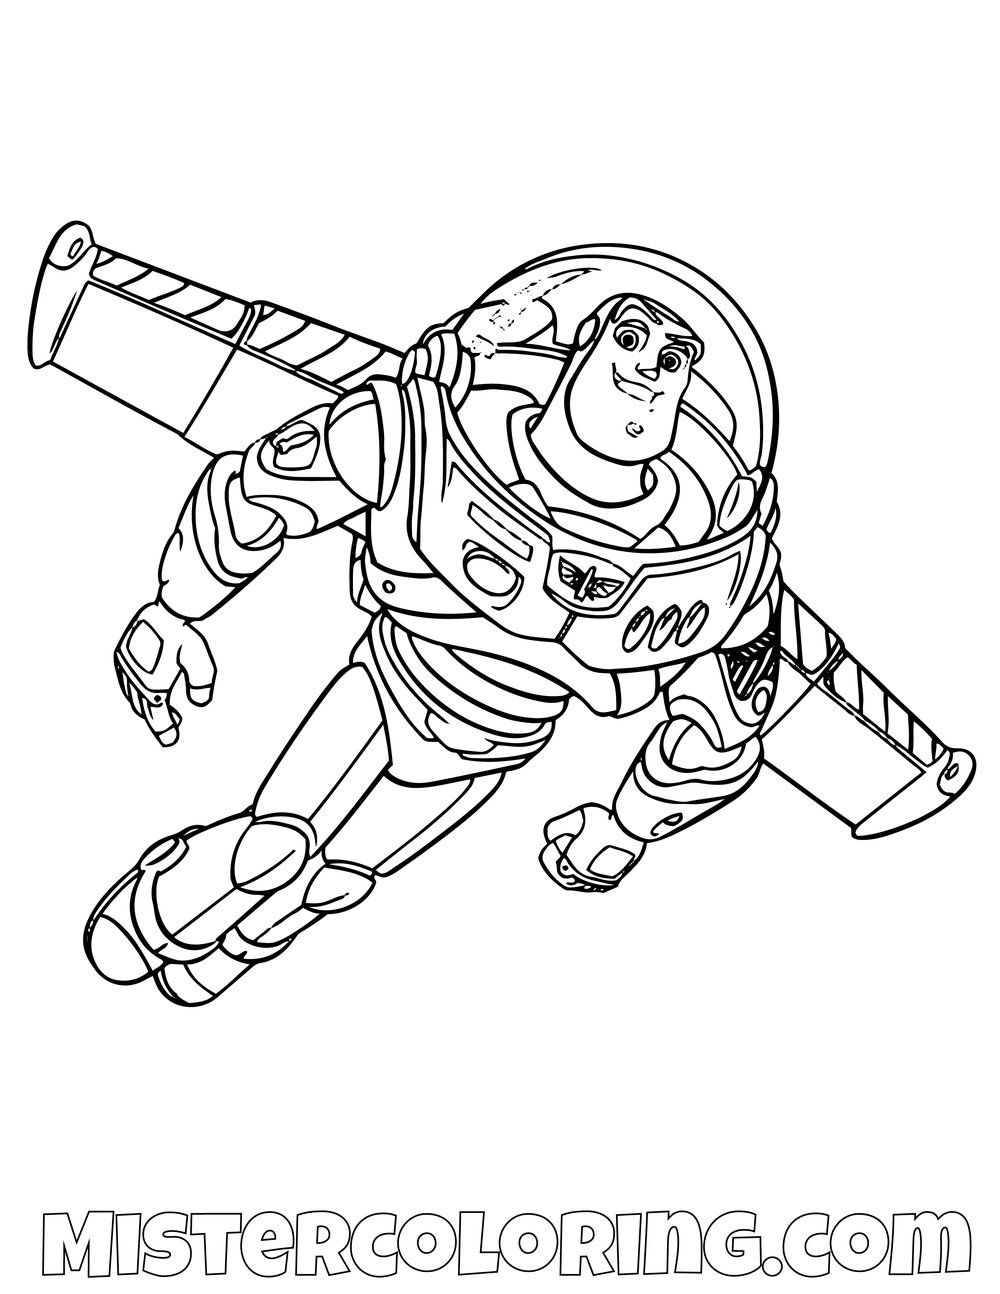 Buzz Lightyear Flying Toy Story Coloring Page Toy Story Coloring Pages Cartoon Coloring Pages Coloring Pages